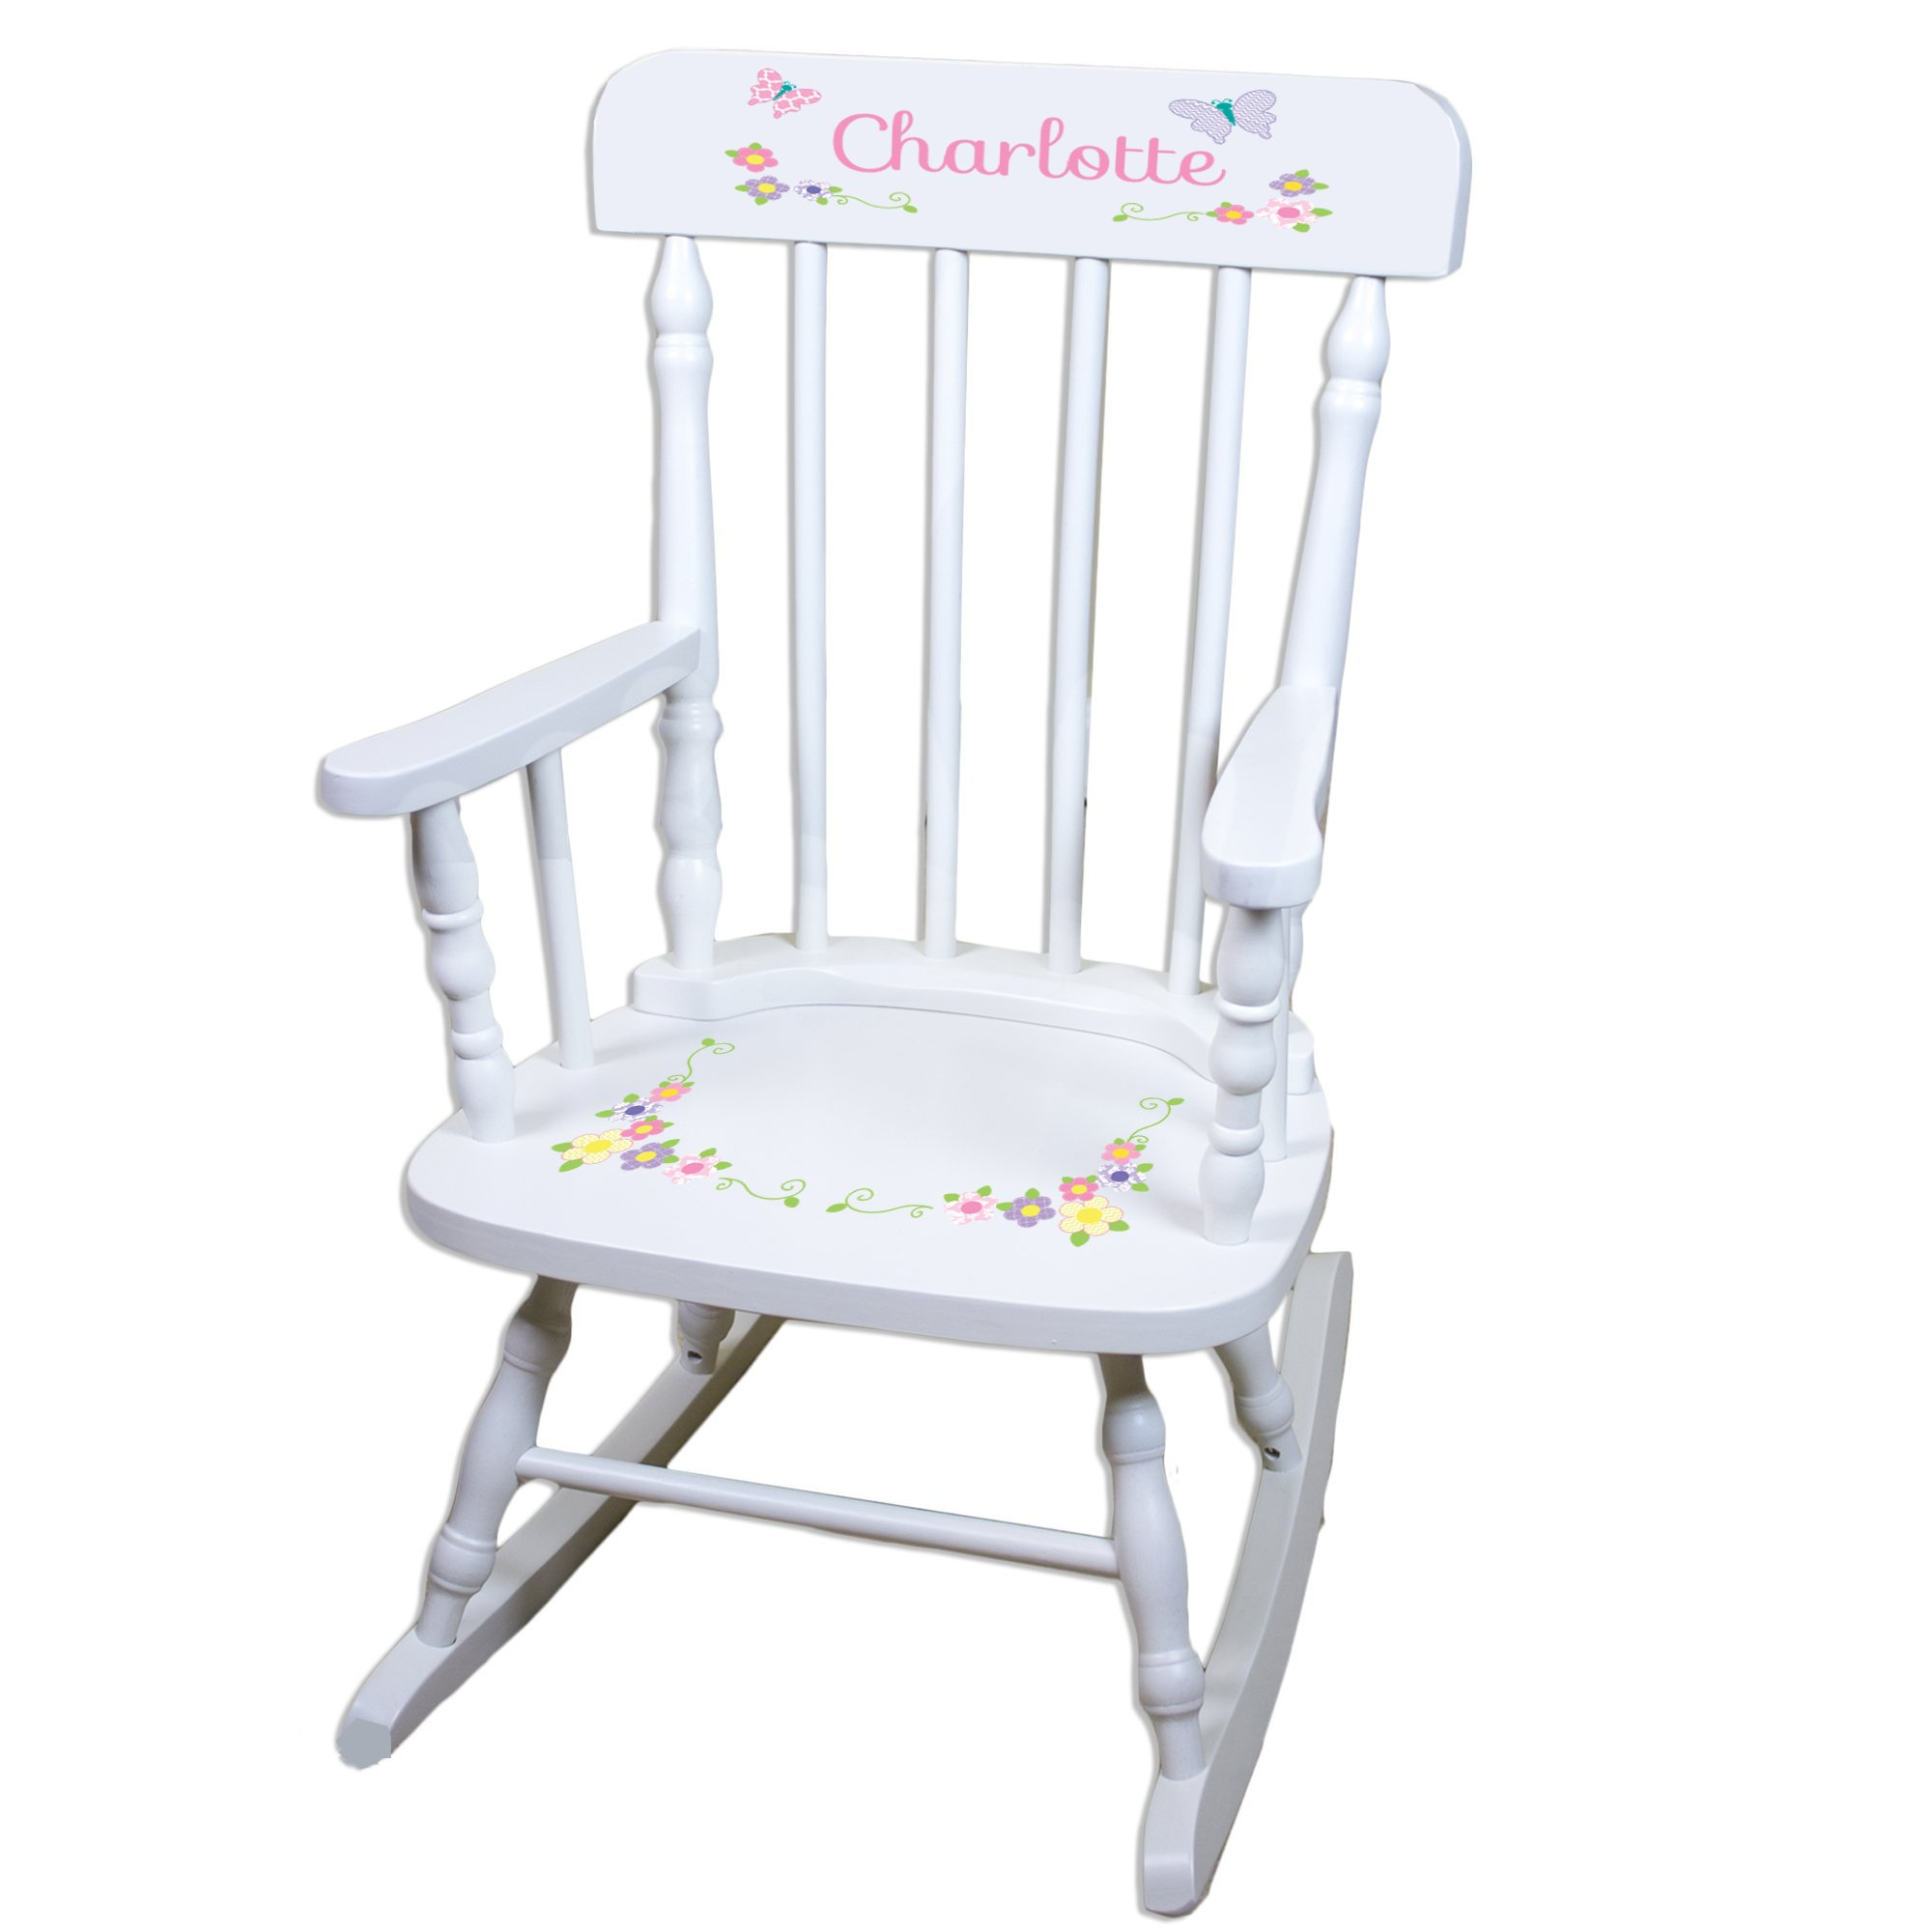 Personalized Pastel Butterfly Garland White Childrens Rocking Chair by MyBambino